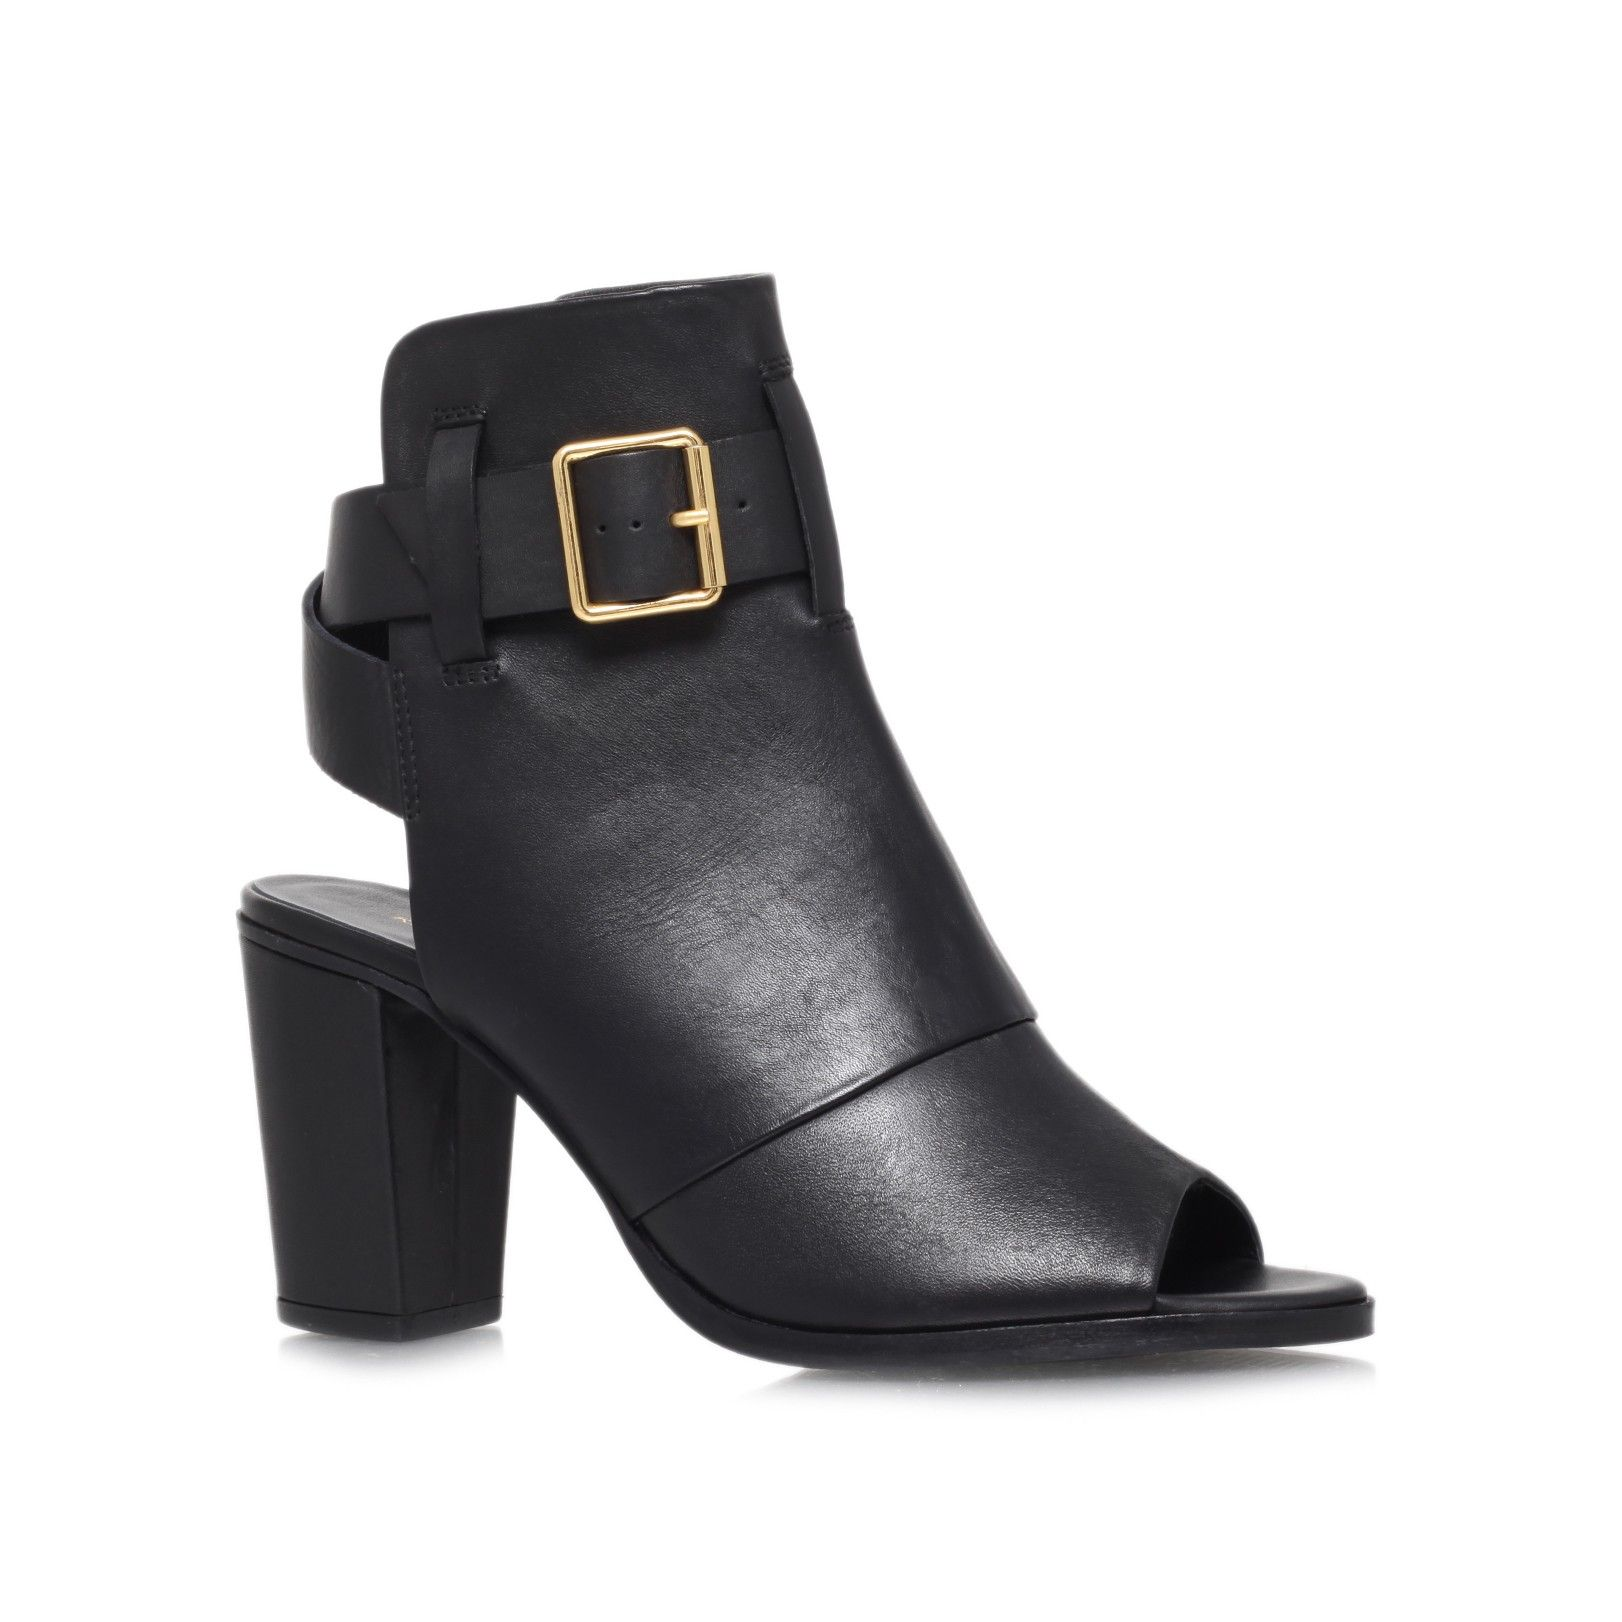 Classic style · Max, black cut out boots by KG Kurt Geiger